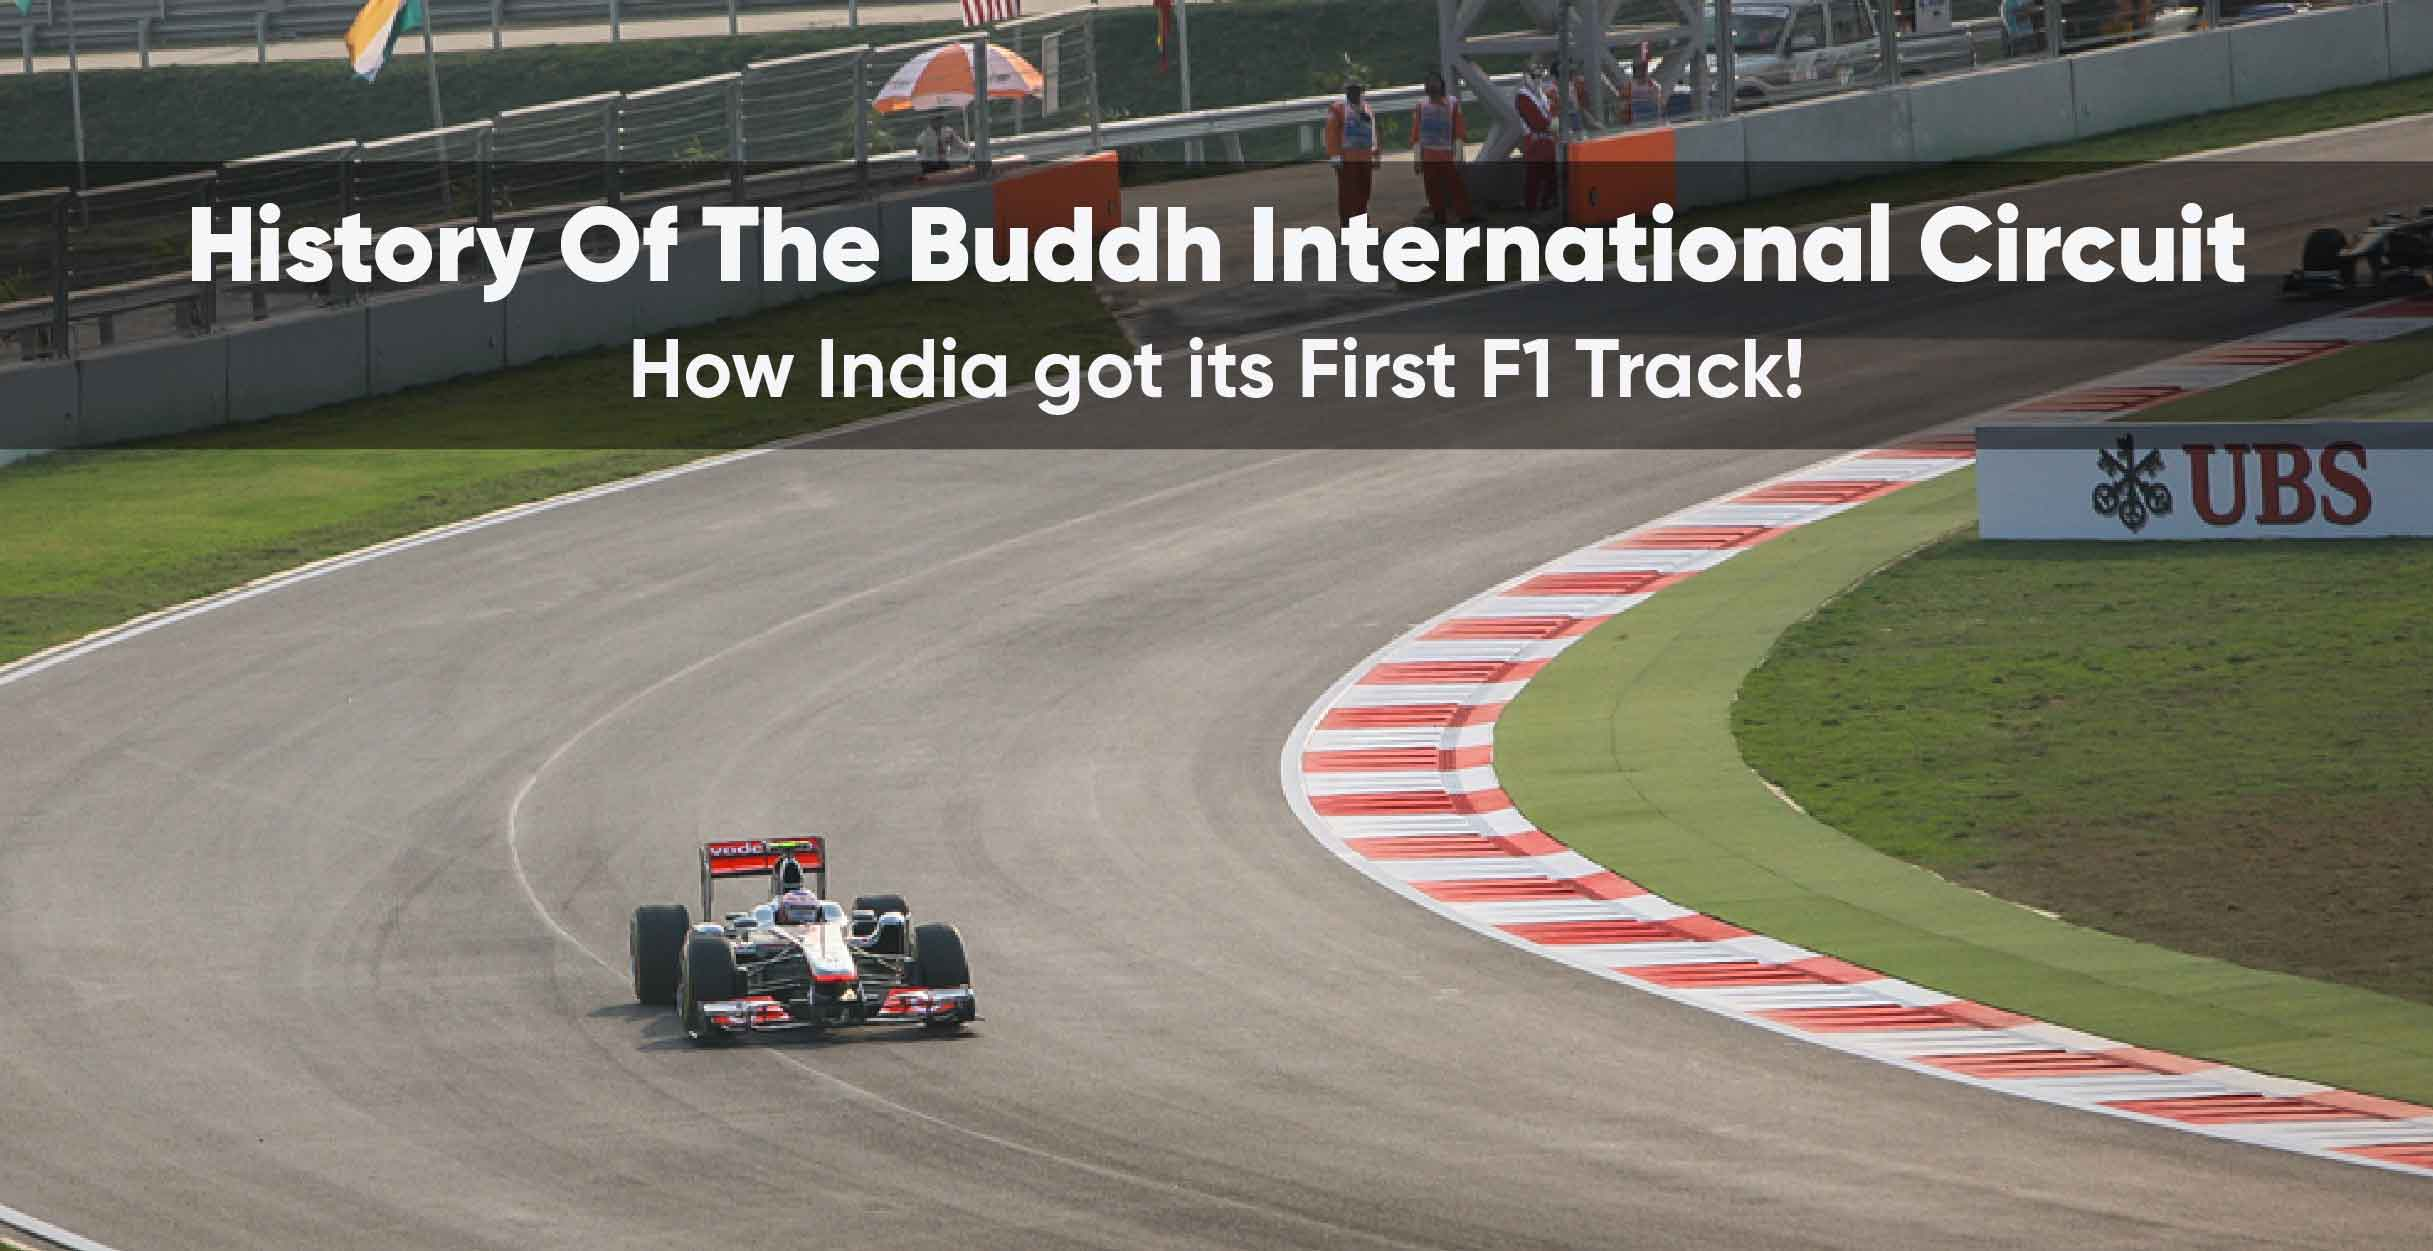 History Of The Buddh International Circuit How India Got Its First F1 Track